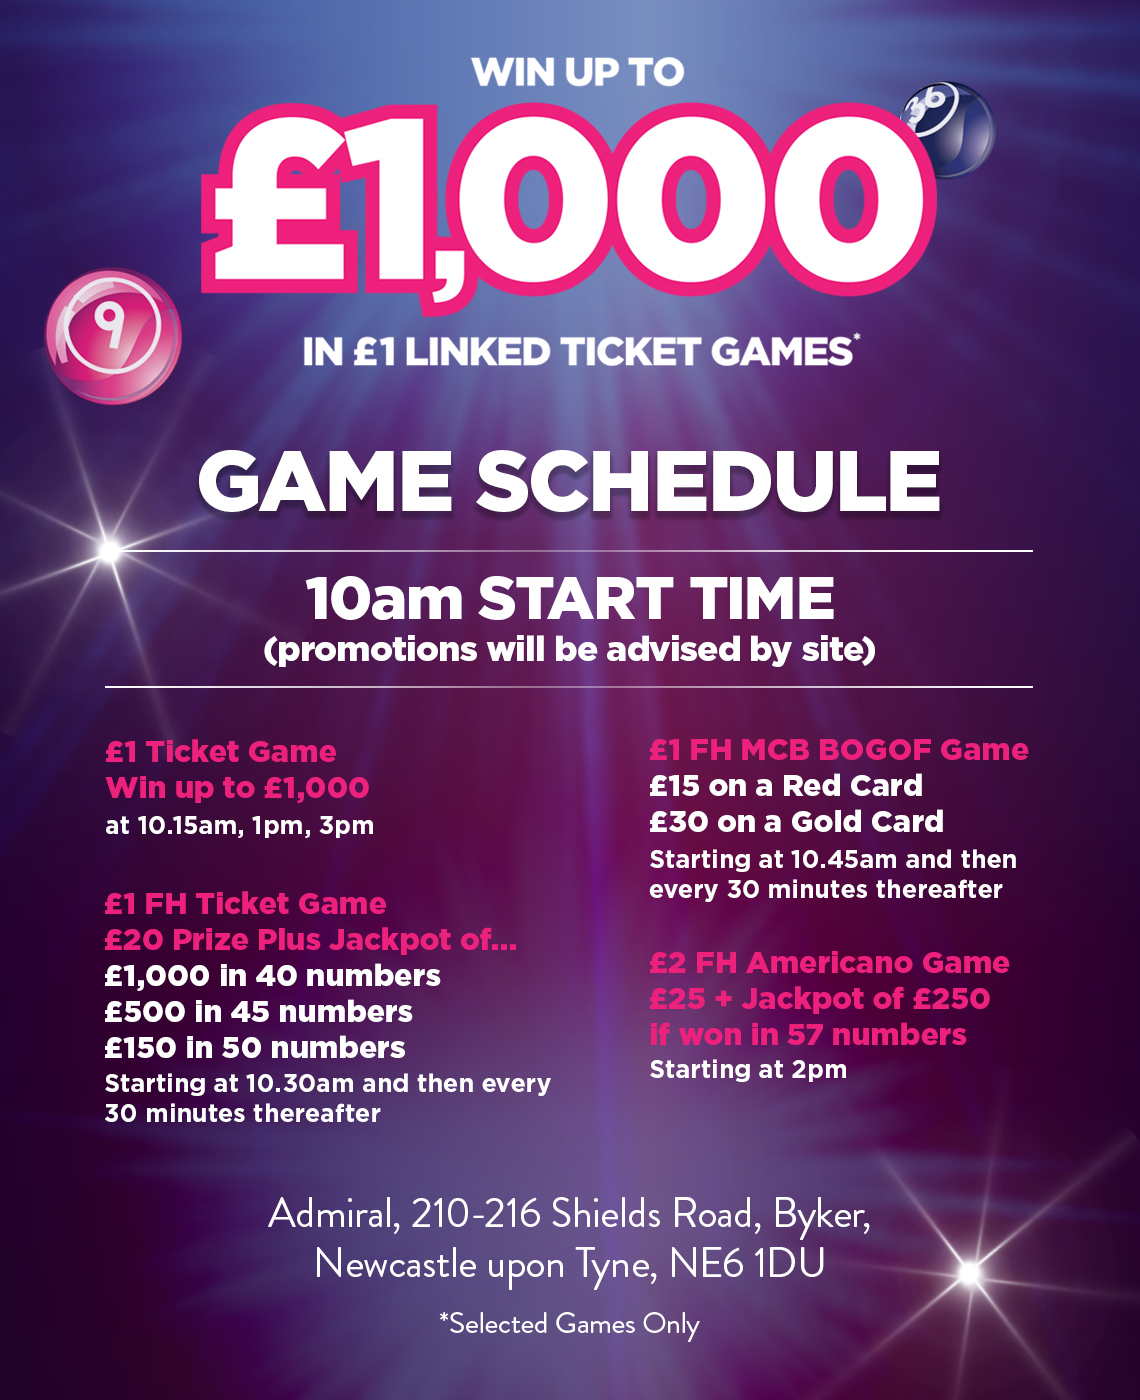 Win up to £1000 in $1 linked ticket games. 10am Start time.